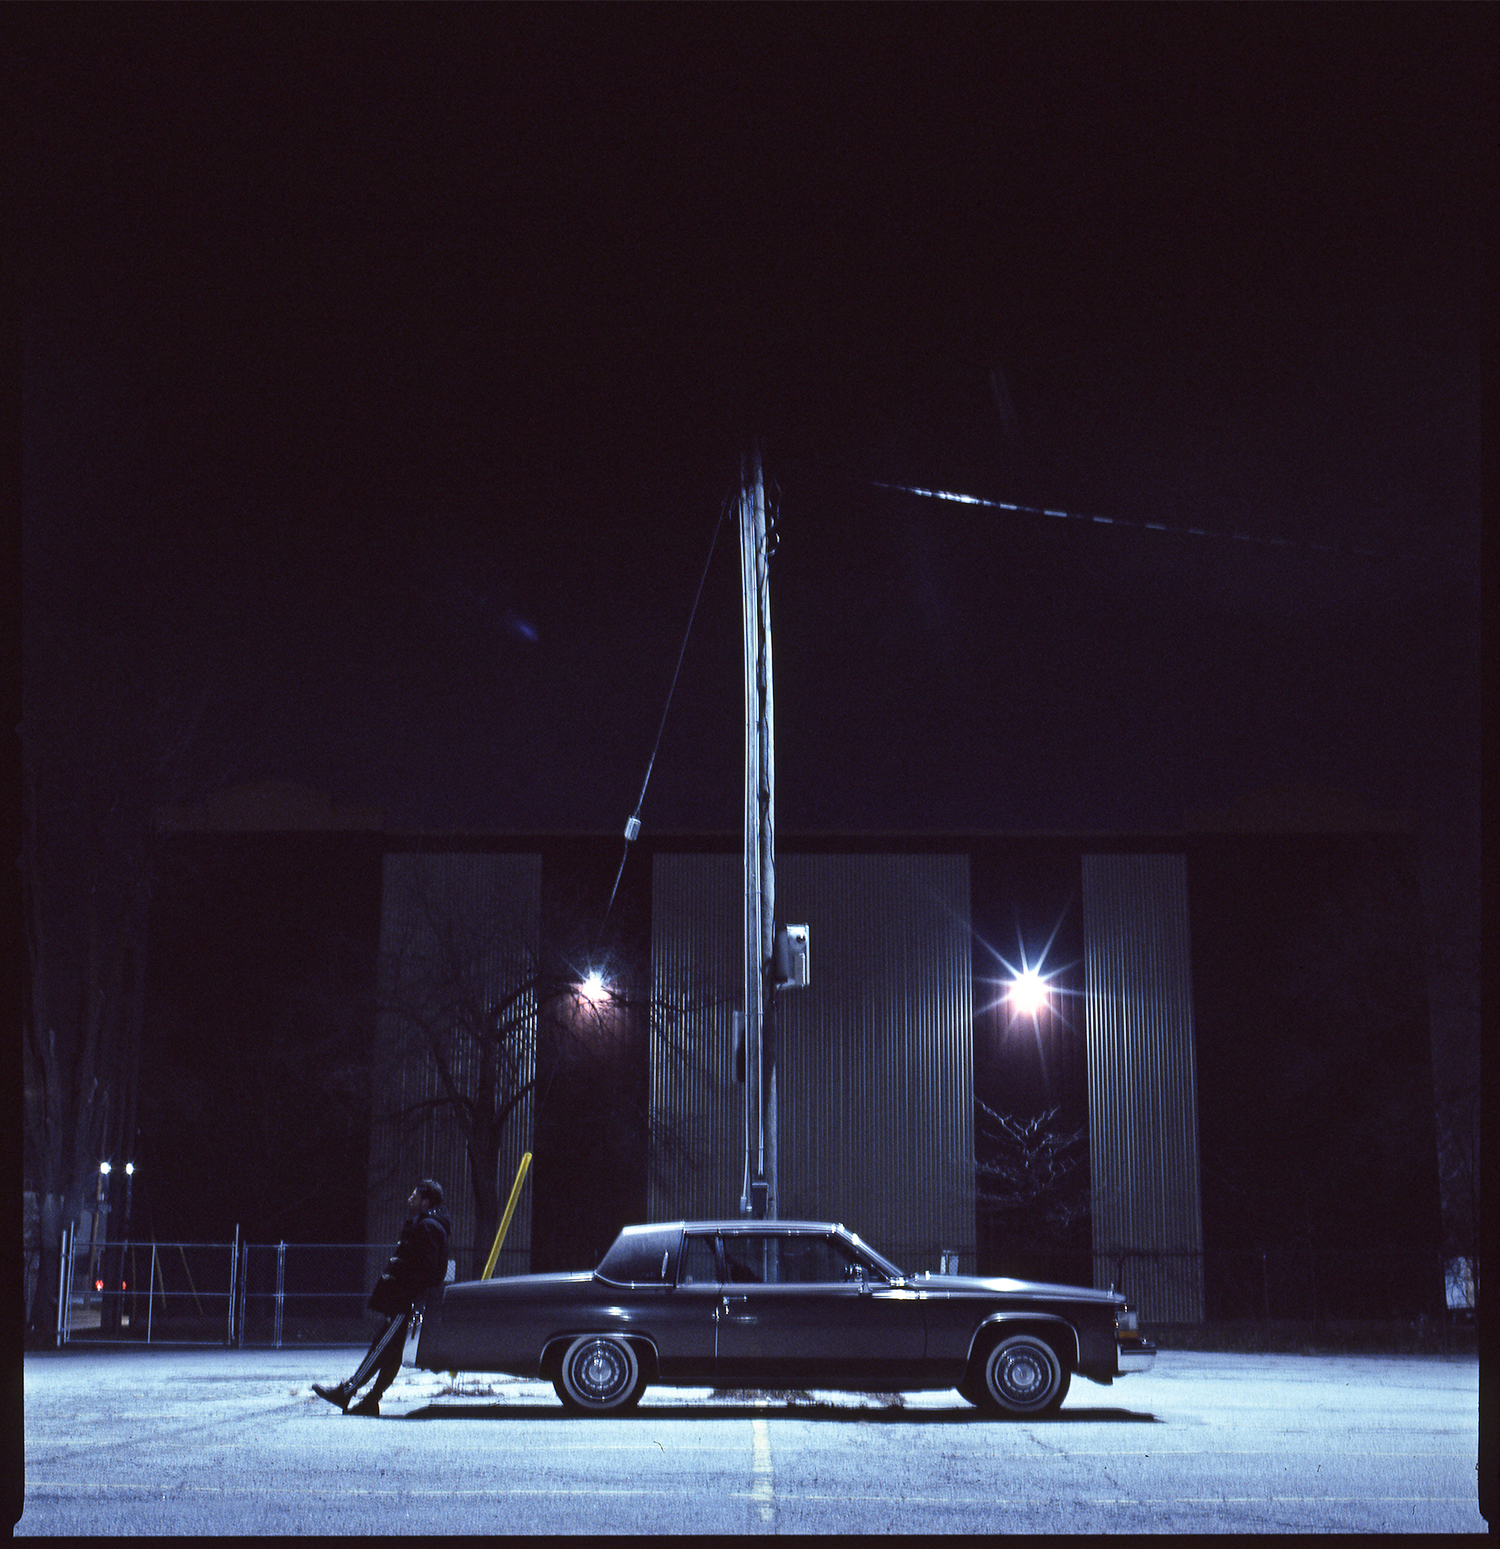 56-Kodak-EPT-160_Toronto-Night_Steve-Hosier-Portrait-with-Cadillac.jpg